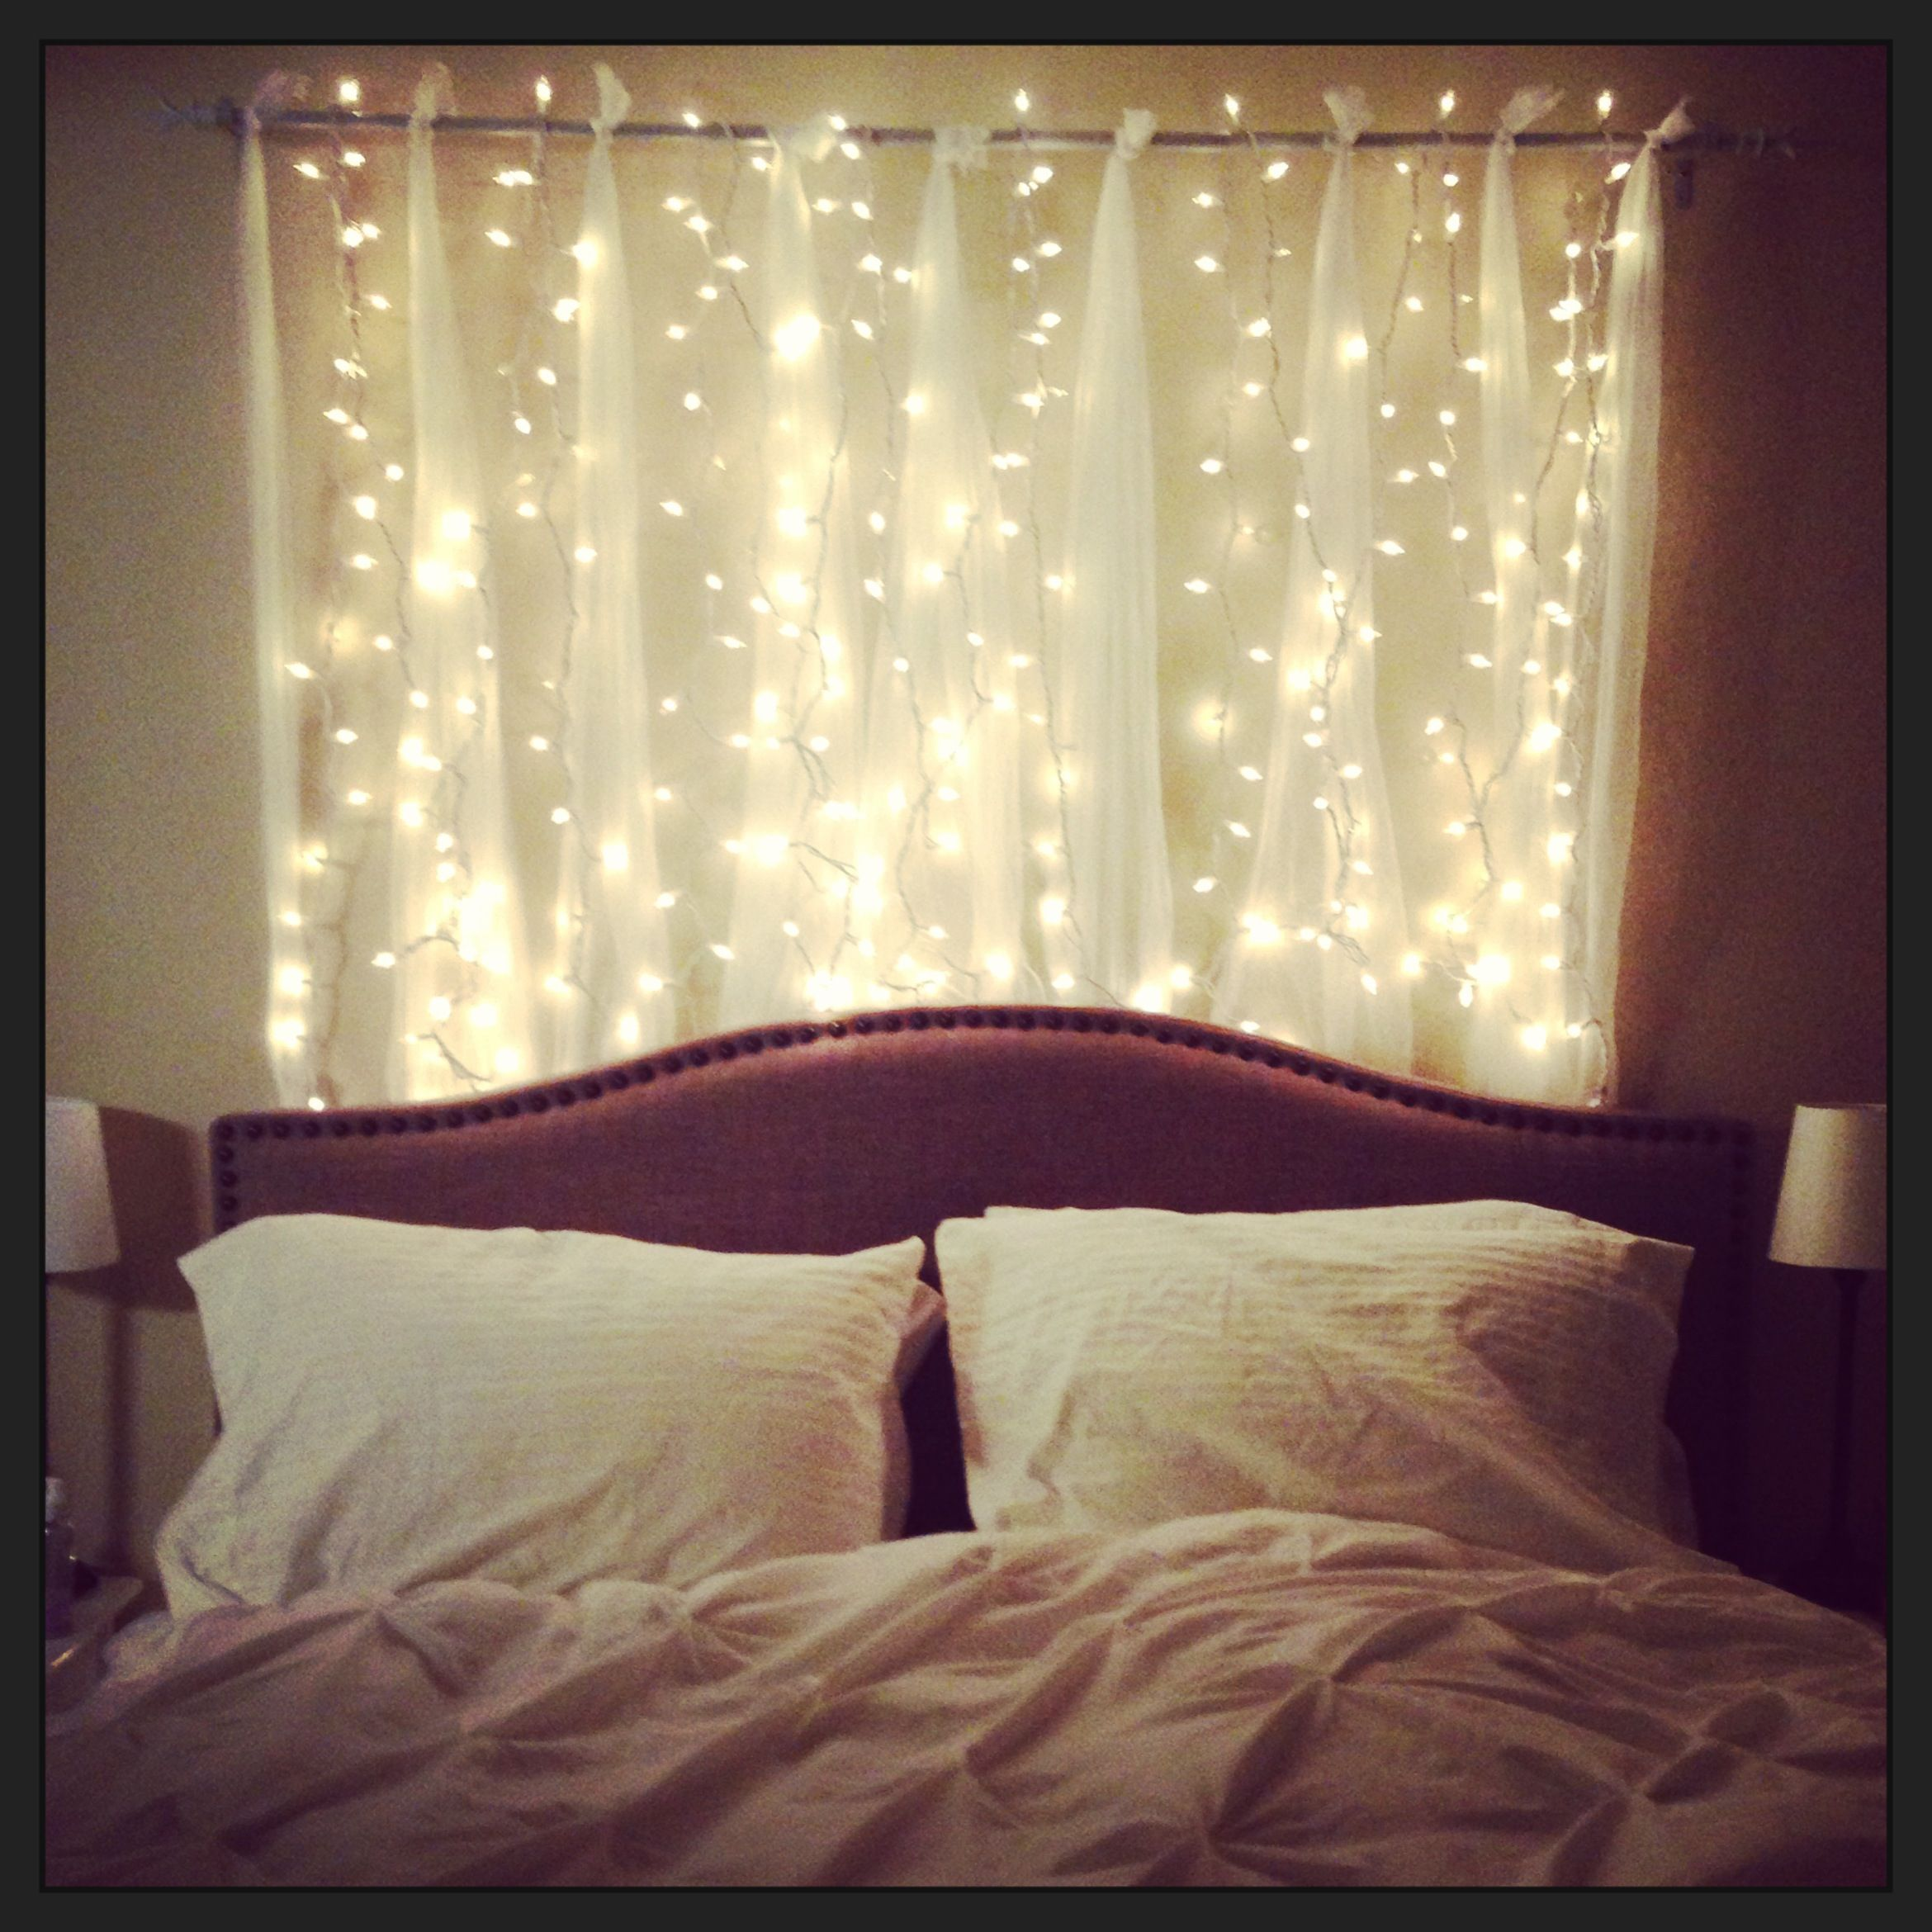 Twinkle Lights Headboard I Absolutely Love This